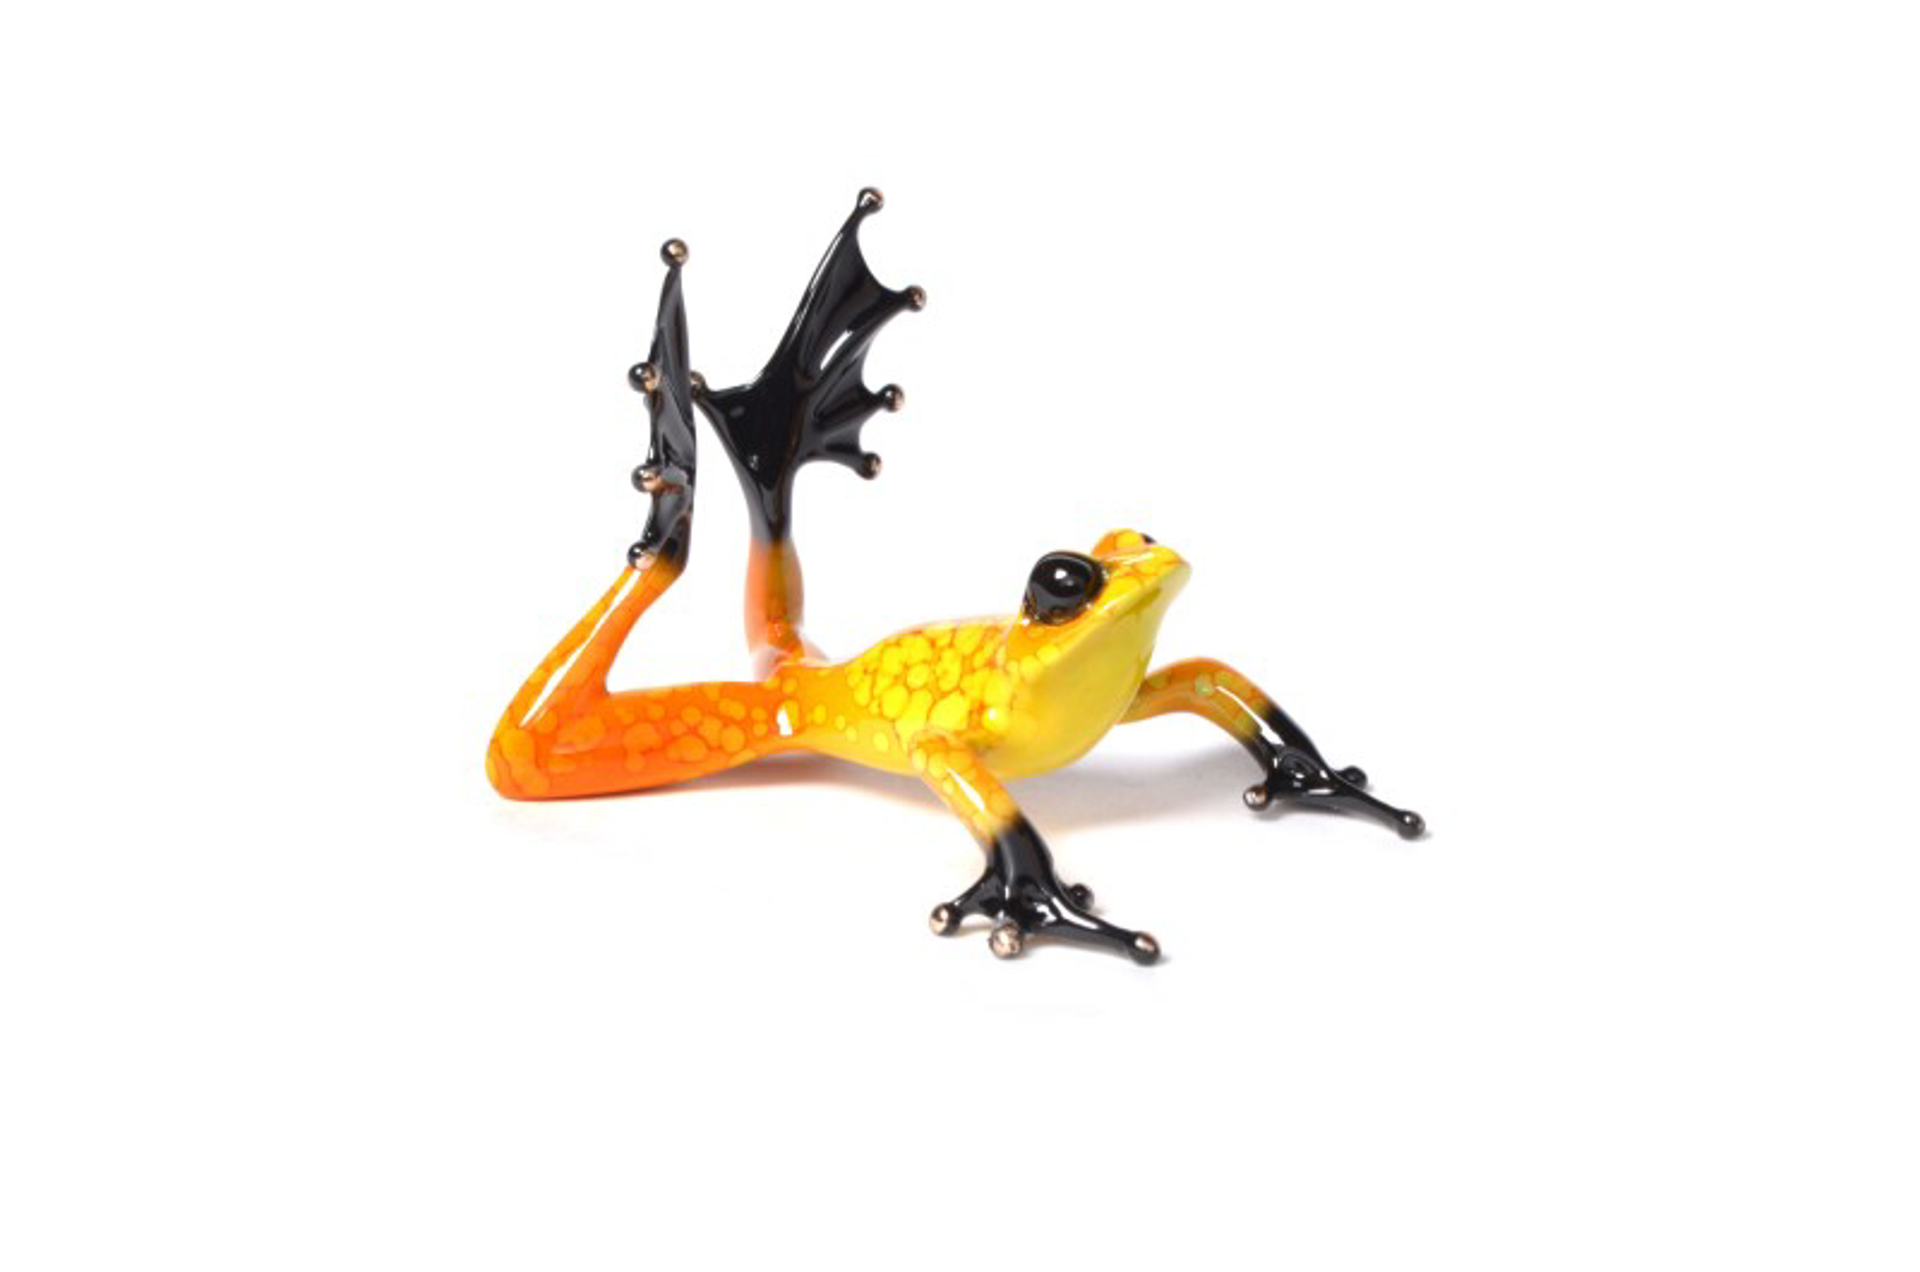 Sunbather by The Frogman